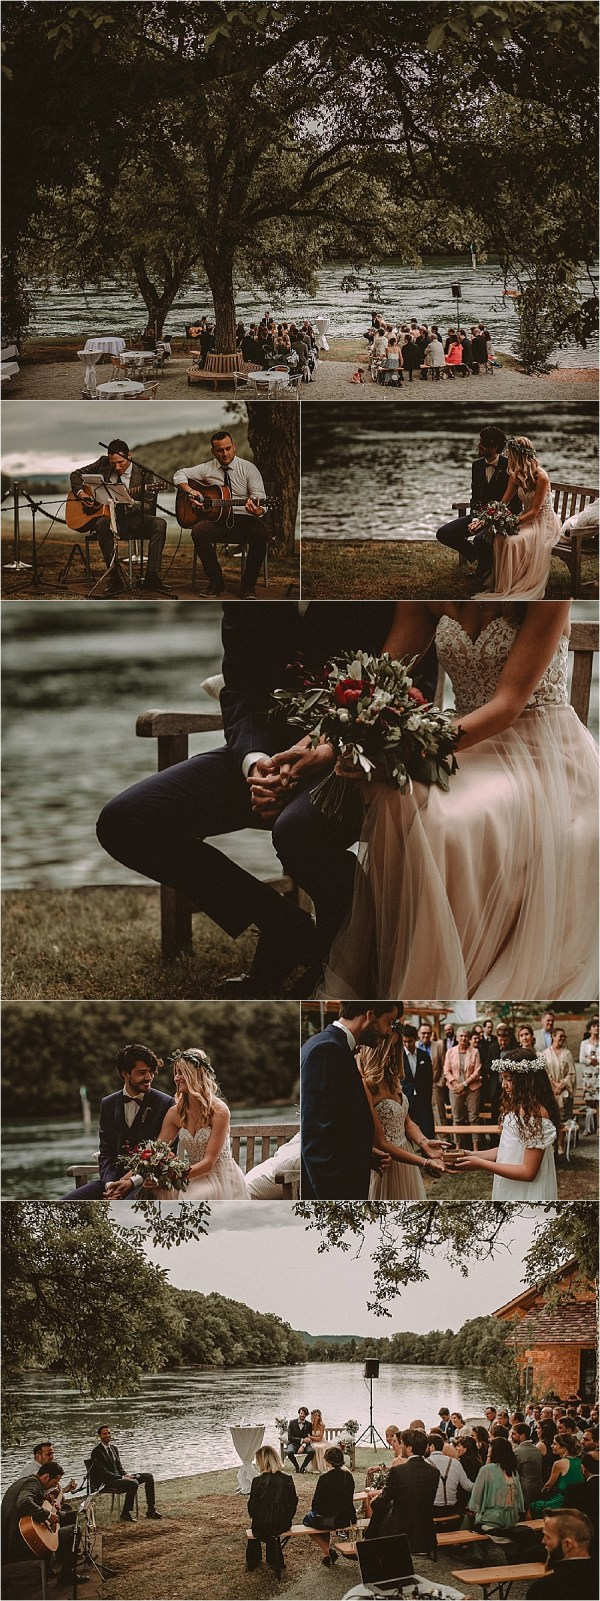 An outdoor ceremony at Gasthaus Schupfen on the river Rhine in Switzerland by Bring Me Somewhere Nice